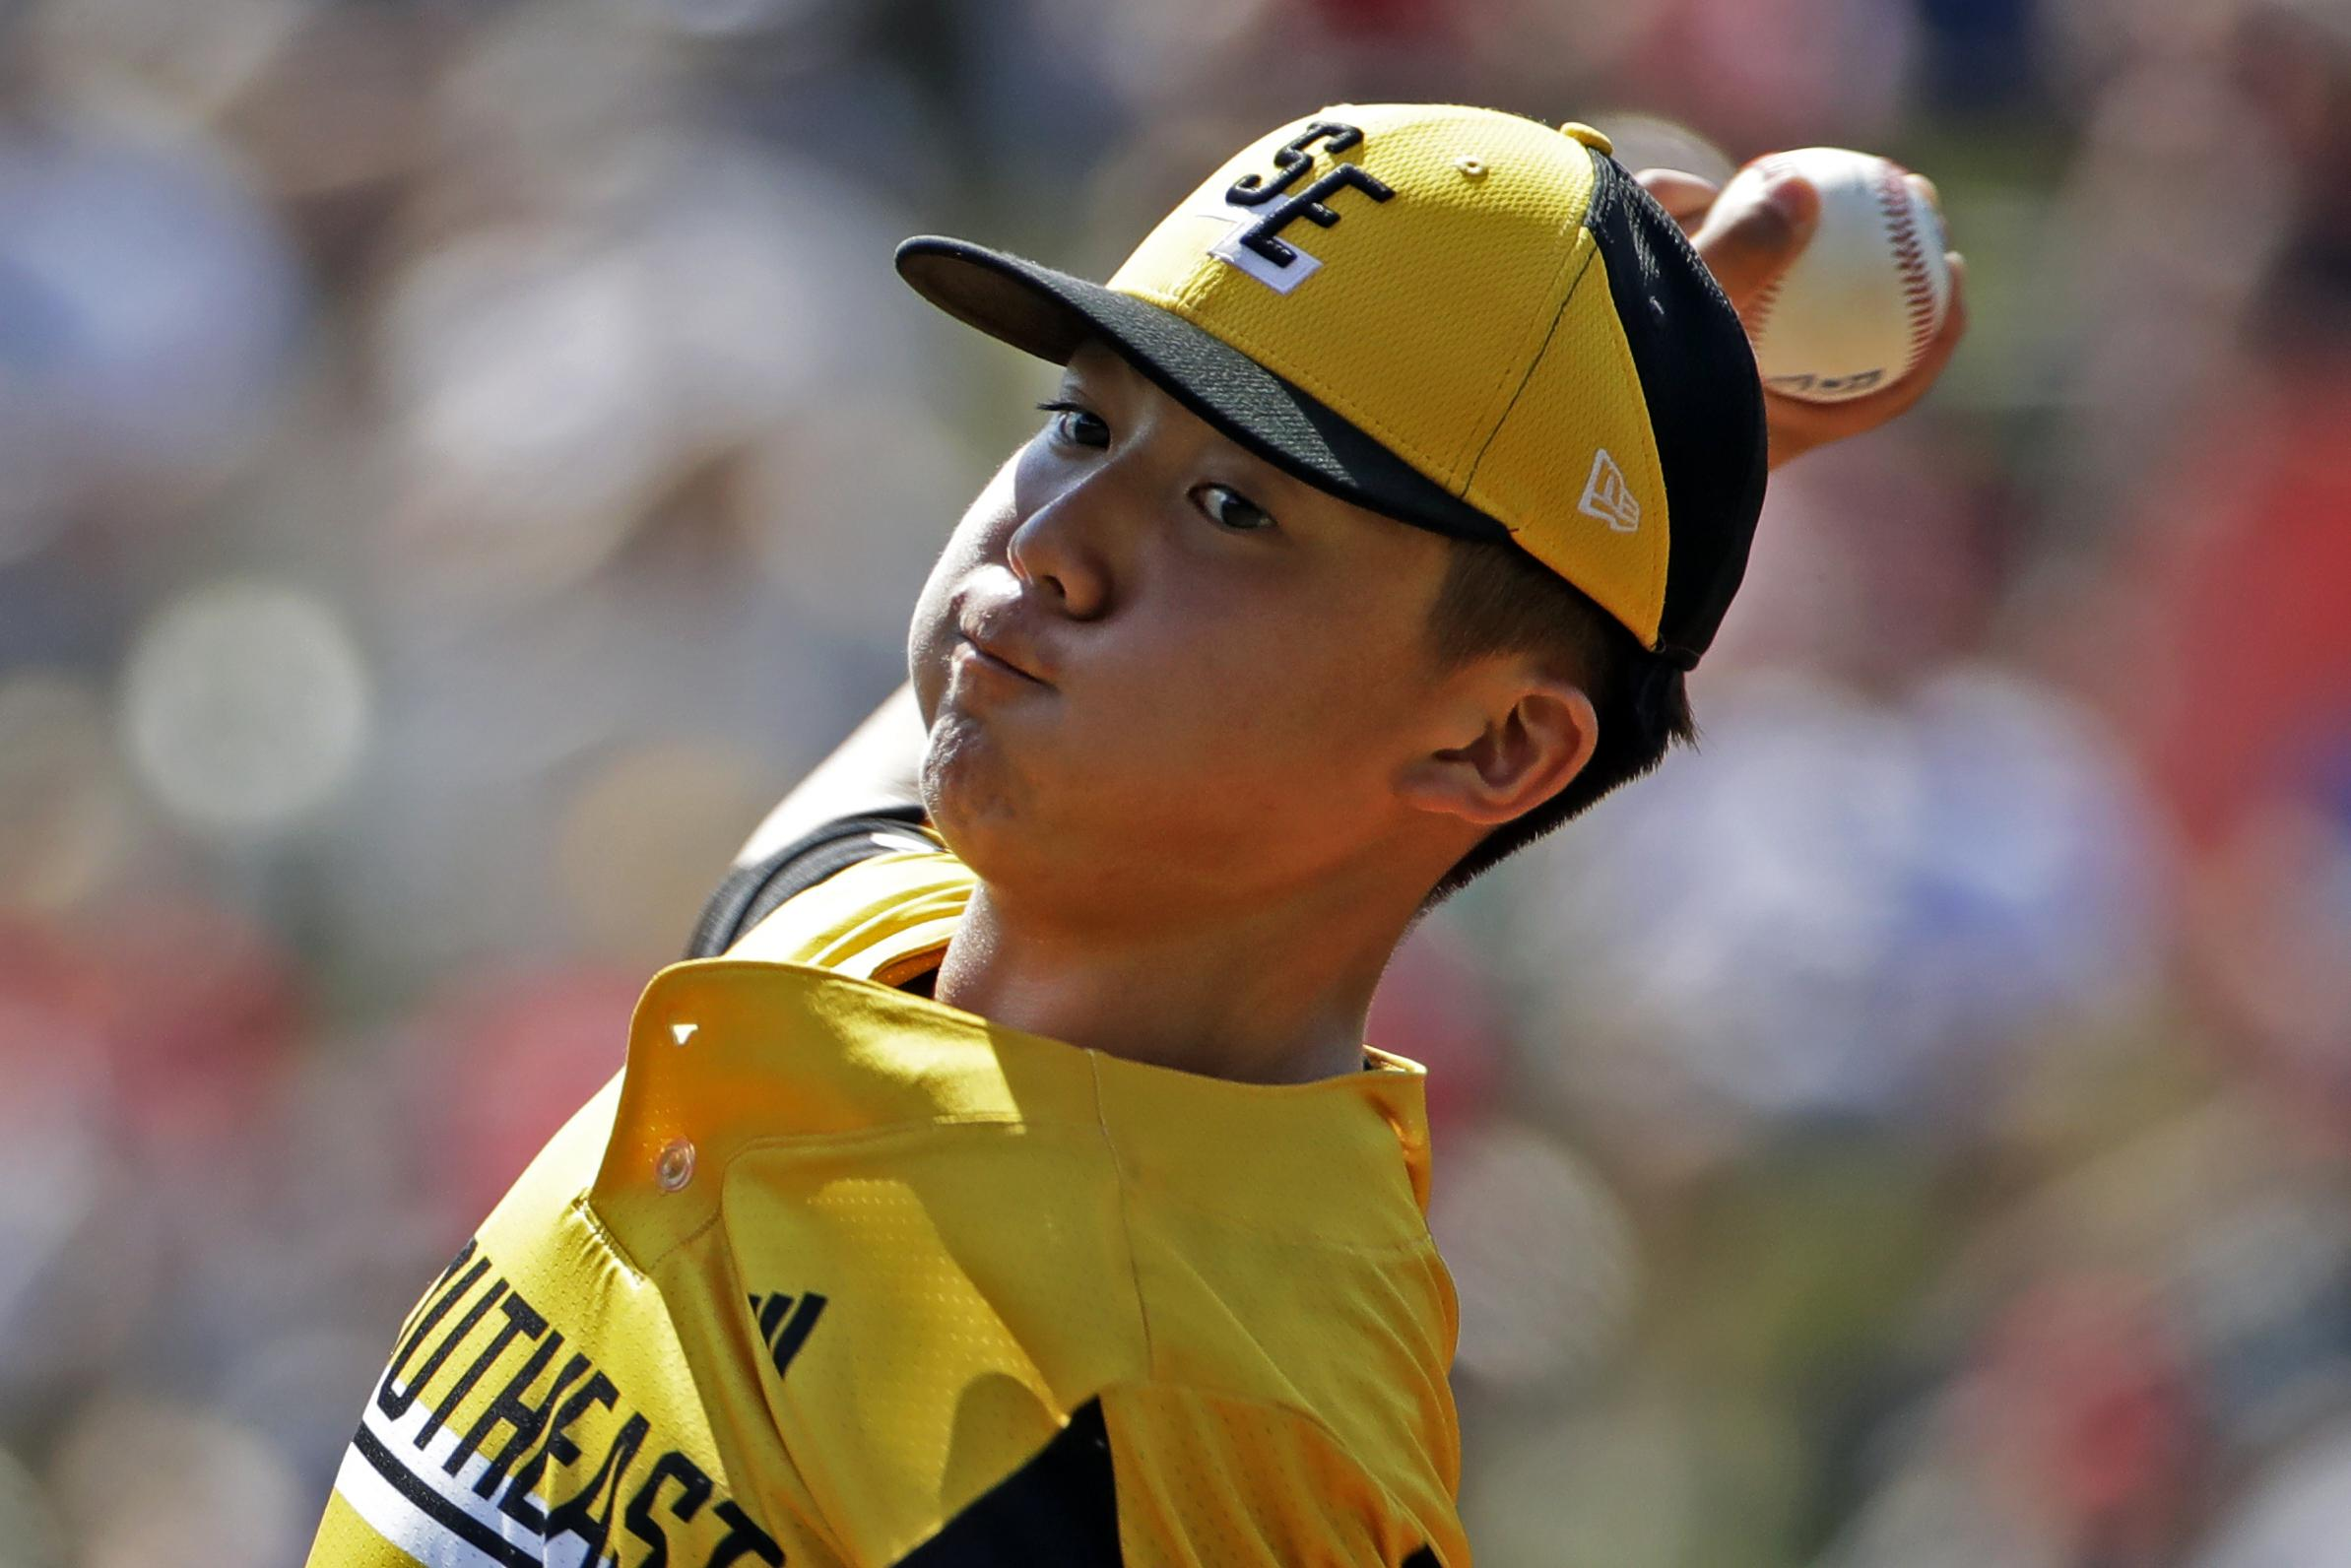 Loudoun South's LLWS no-hitters a result of limiting pitch totals